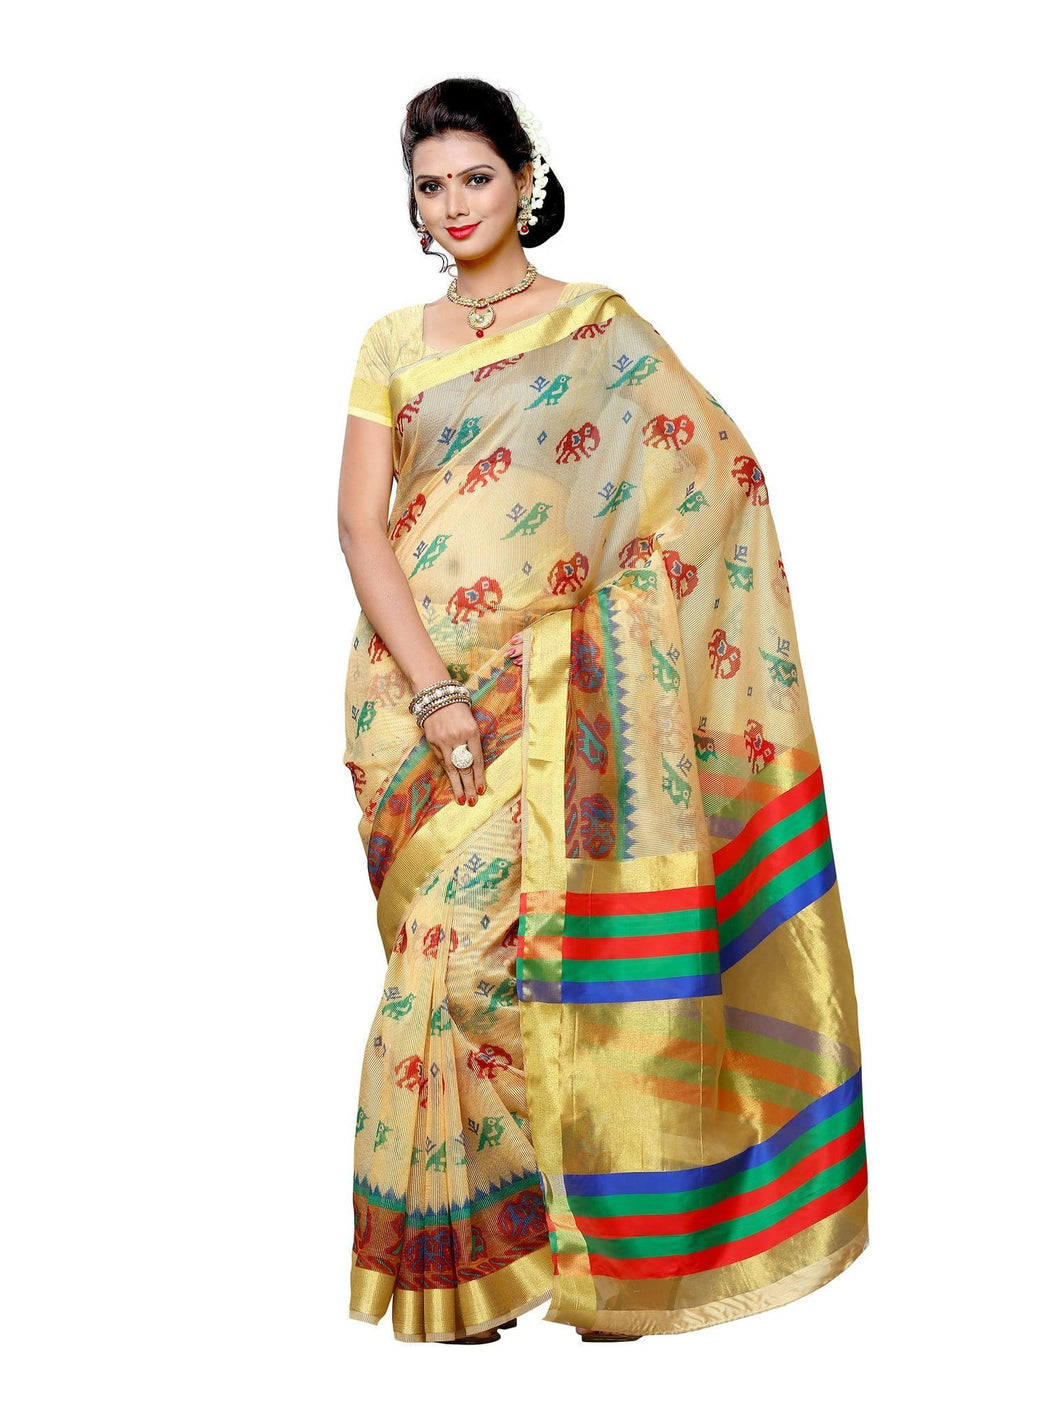 MIMOSA Ikkat Style Net Saree with Blouse in Color Chiku (3409-prs8-dya-1-cku) - kupindaindia